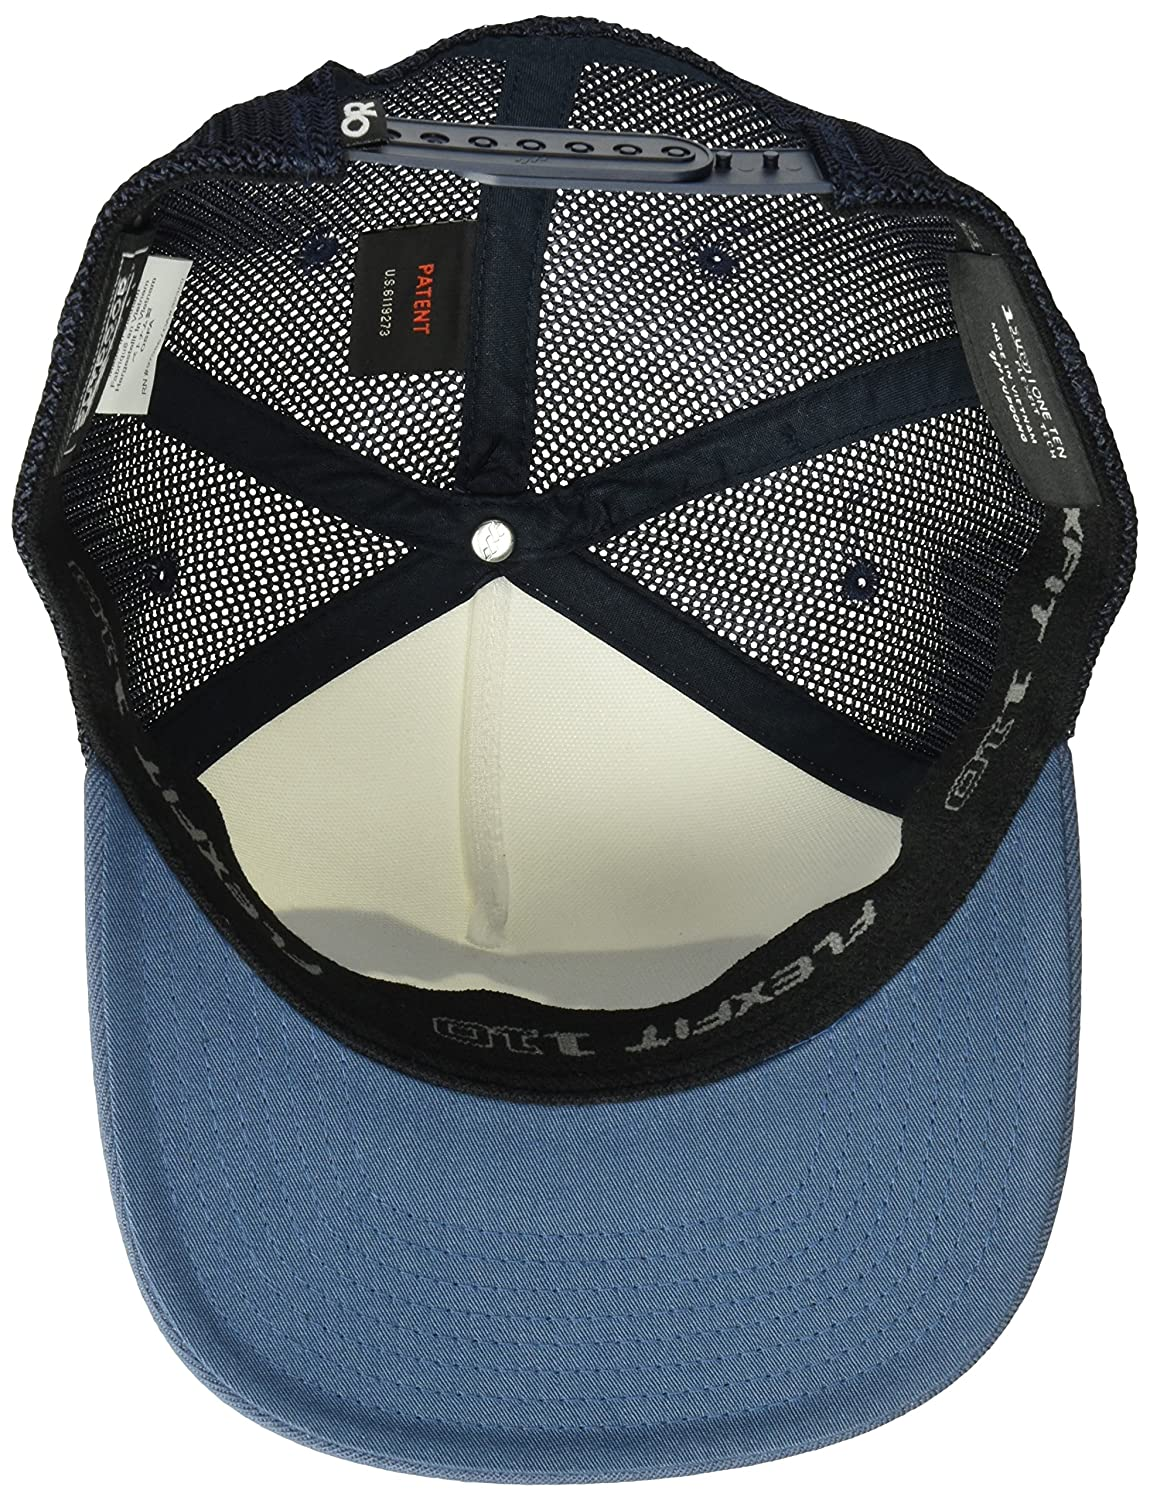 Outdoor Research 264400 Outdoor Research Negative Space Trucker Cap Fatigue 1size